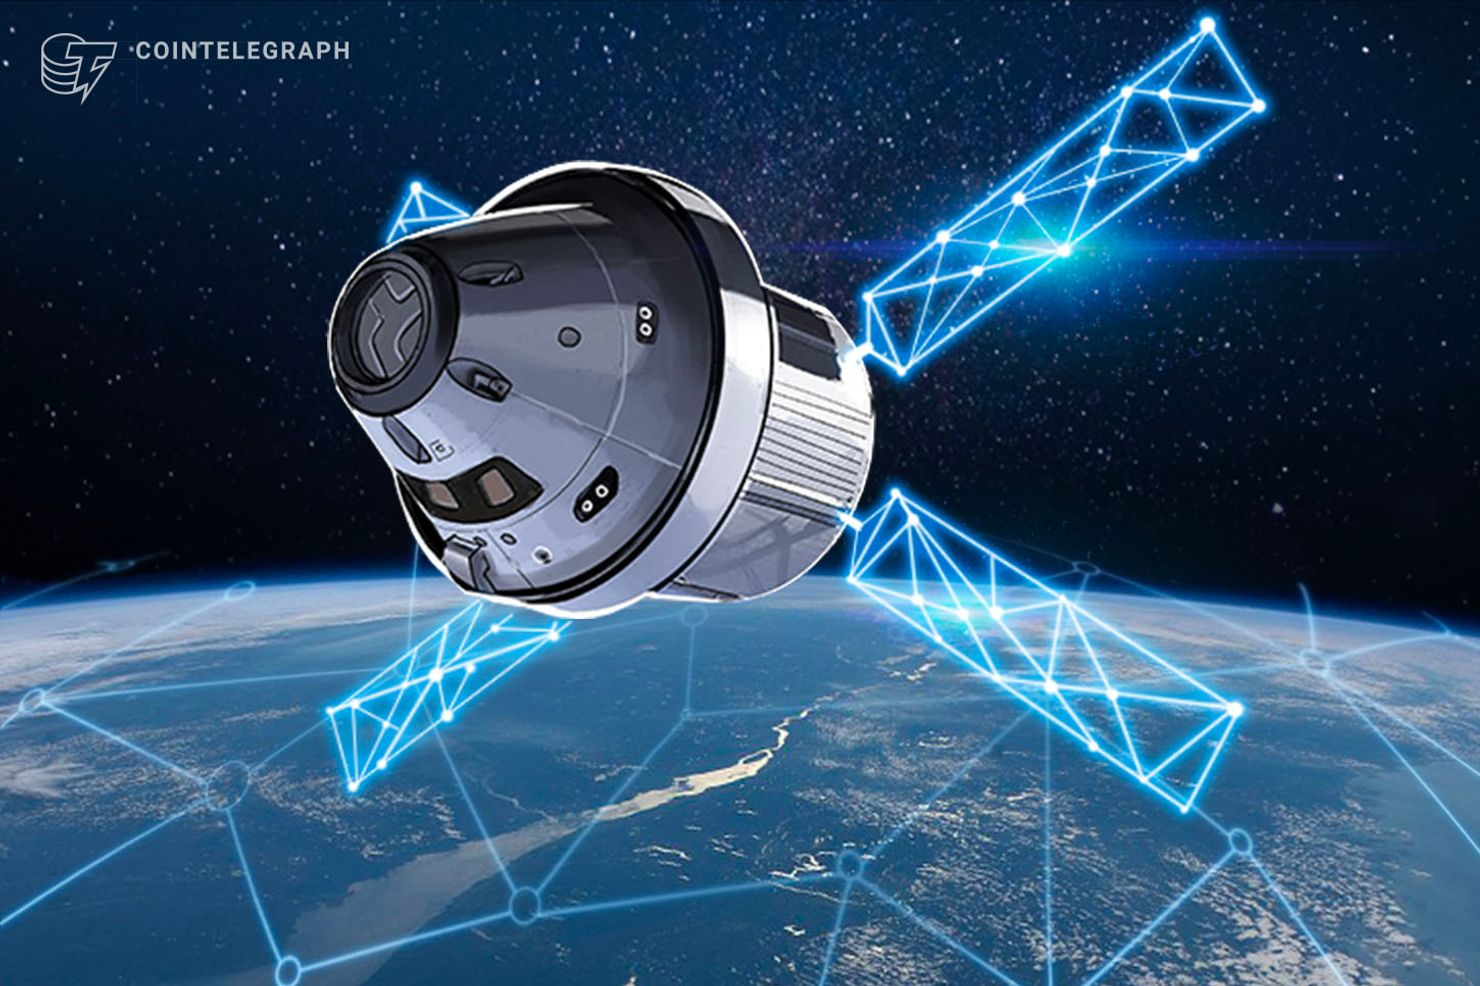 Vonage Subsidiary Receives Patent to Secure Voice Communications With Blockchain